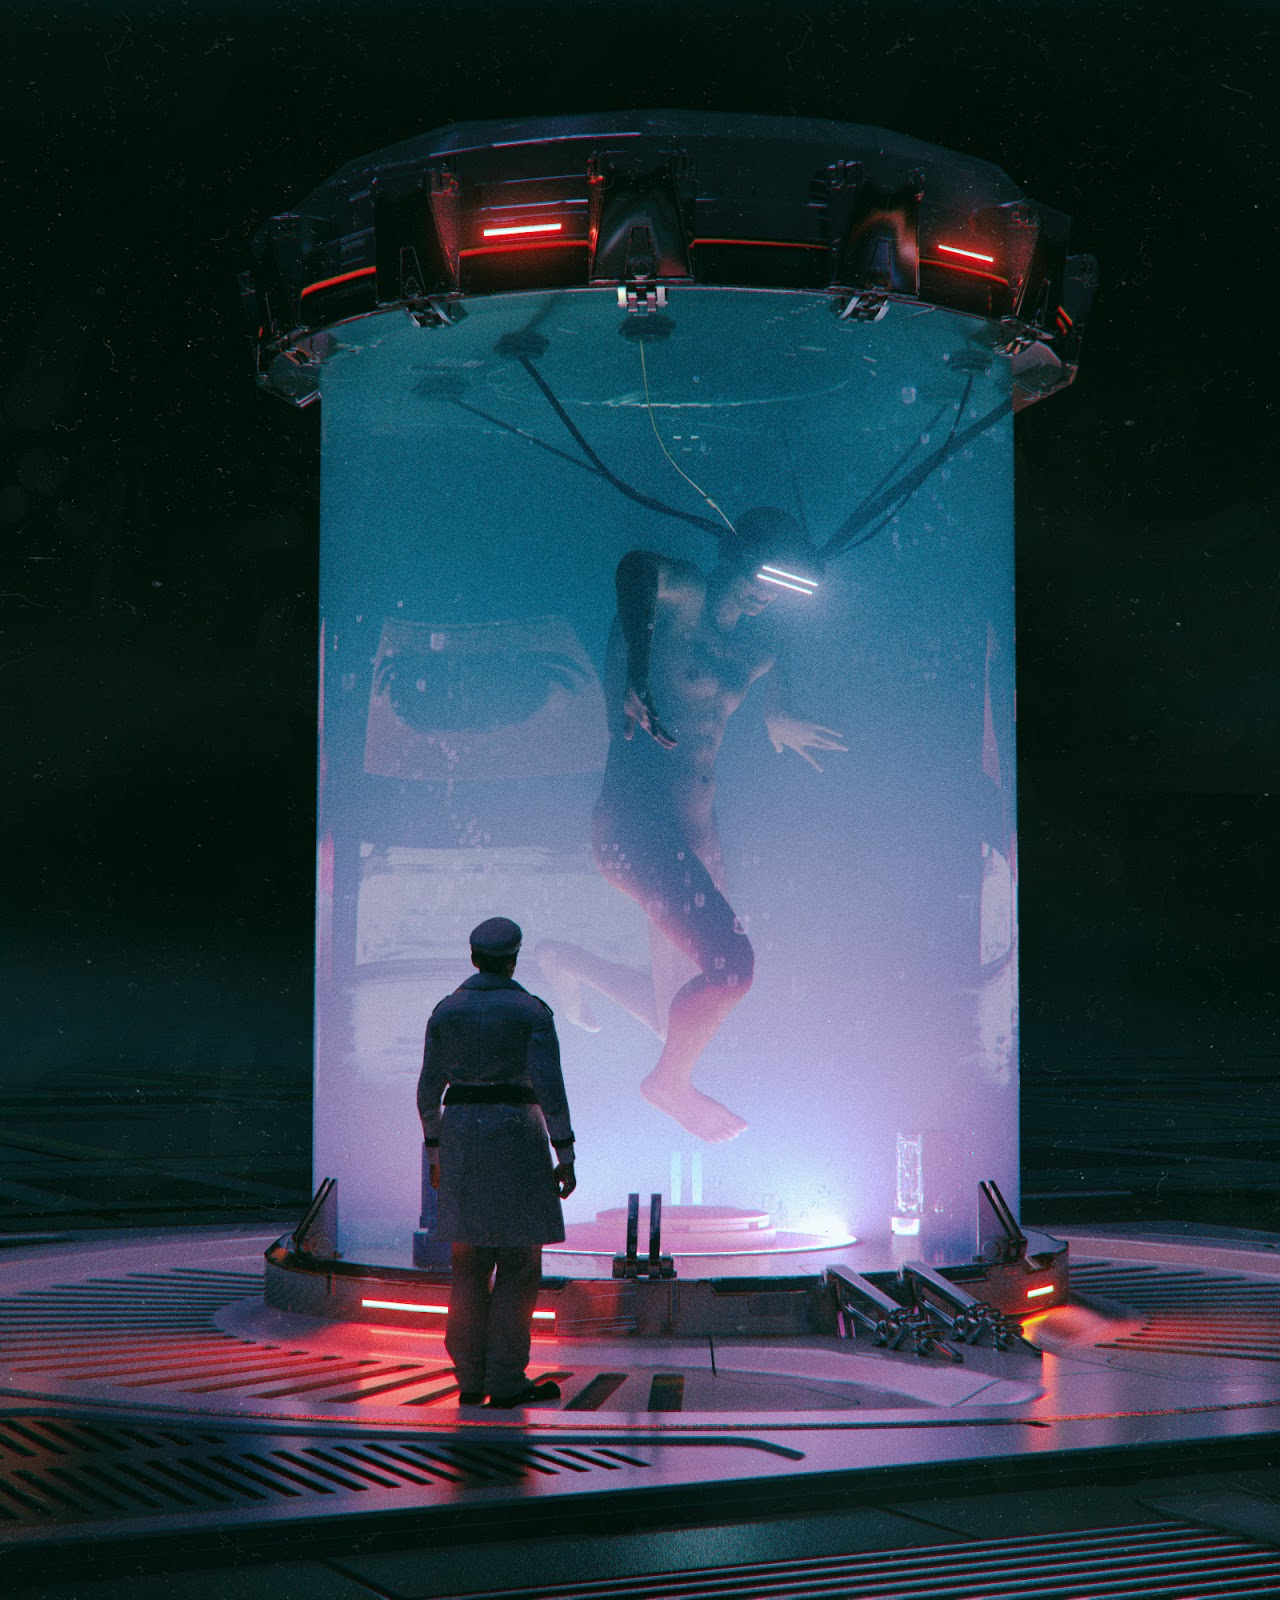 Images: A Collection Of Sci-Fi Concept Art From Beeple